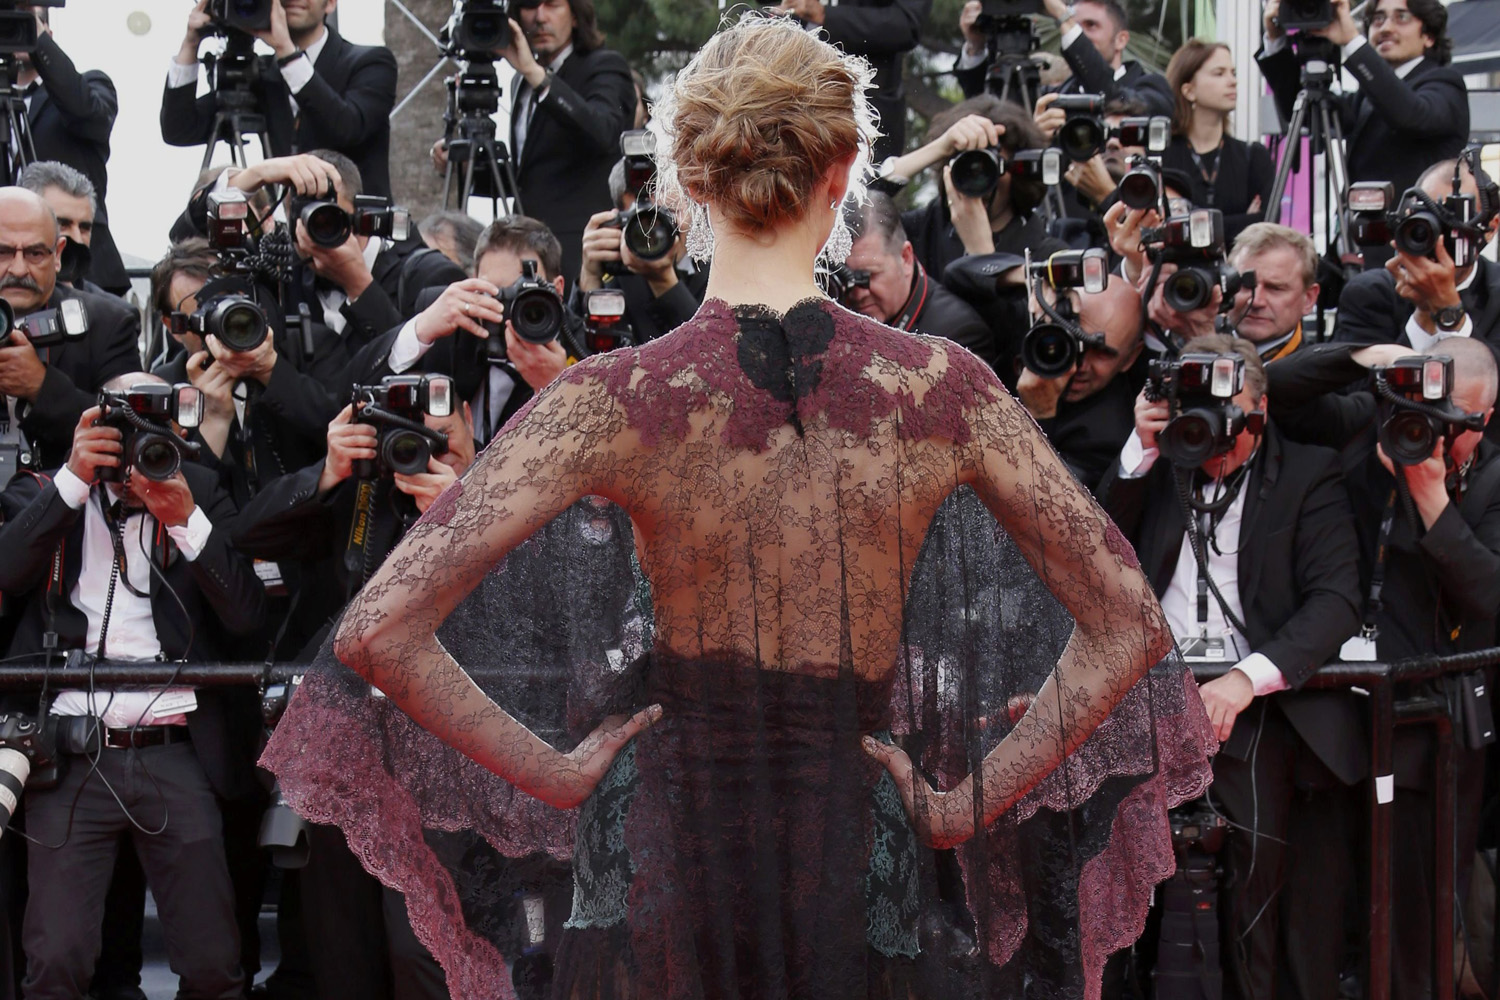 May 14, 2014. Model Karlie Kloss poses on the red carpet as she arrives for the opening ceremony and the screening of the film  Grace of Monaco  (Grace de Monaco) during the 67th Cannes Film Festival in Cannes.